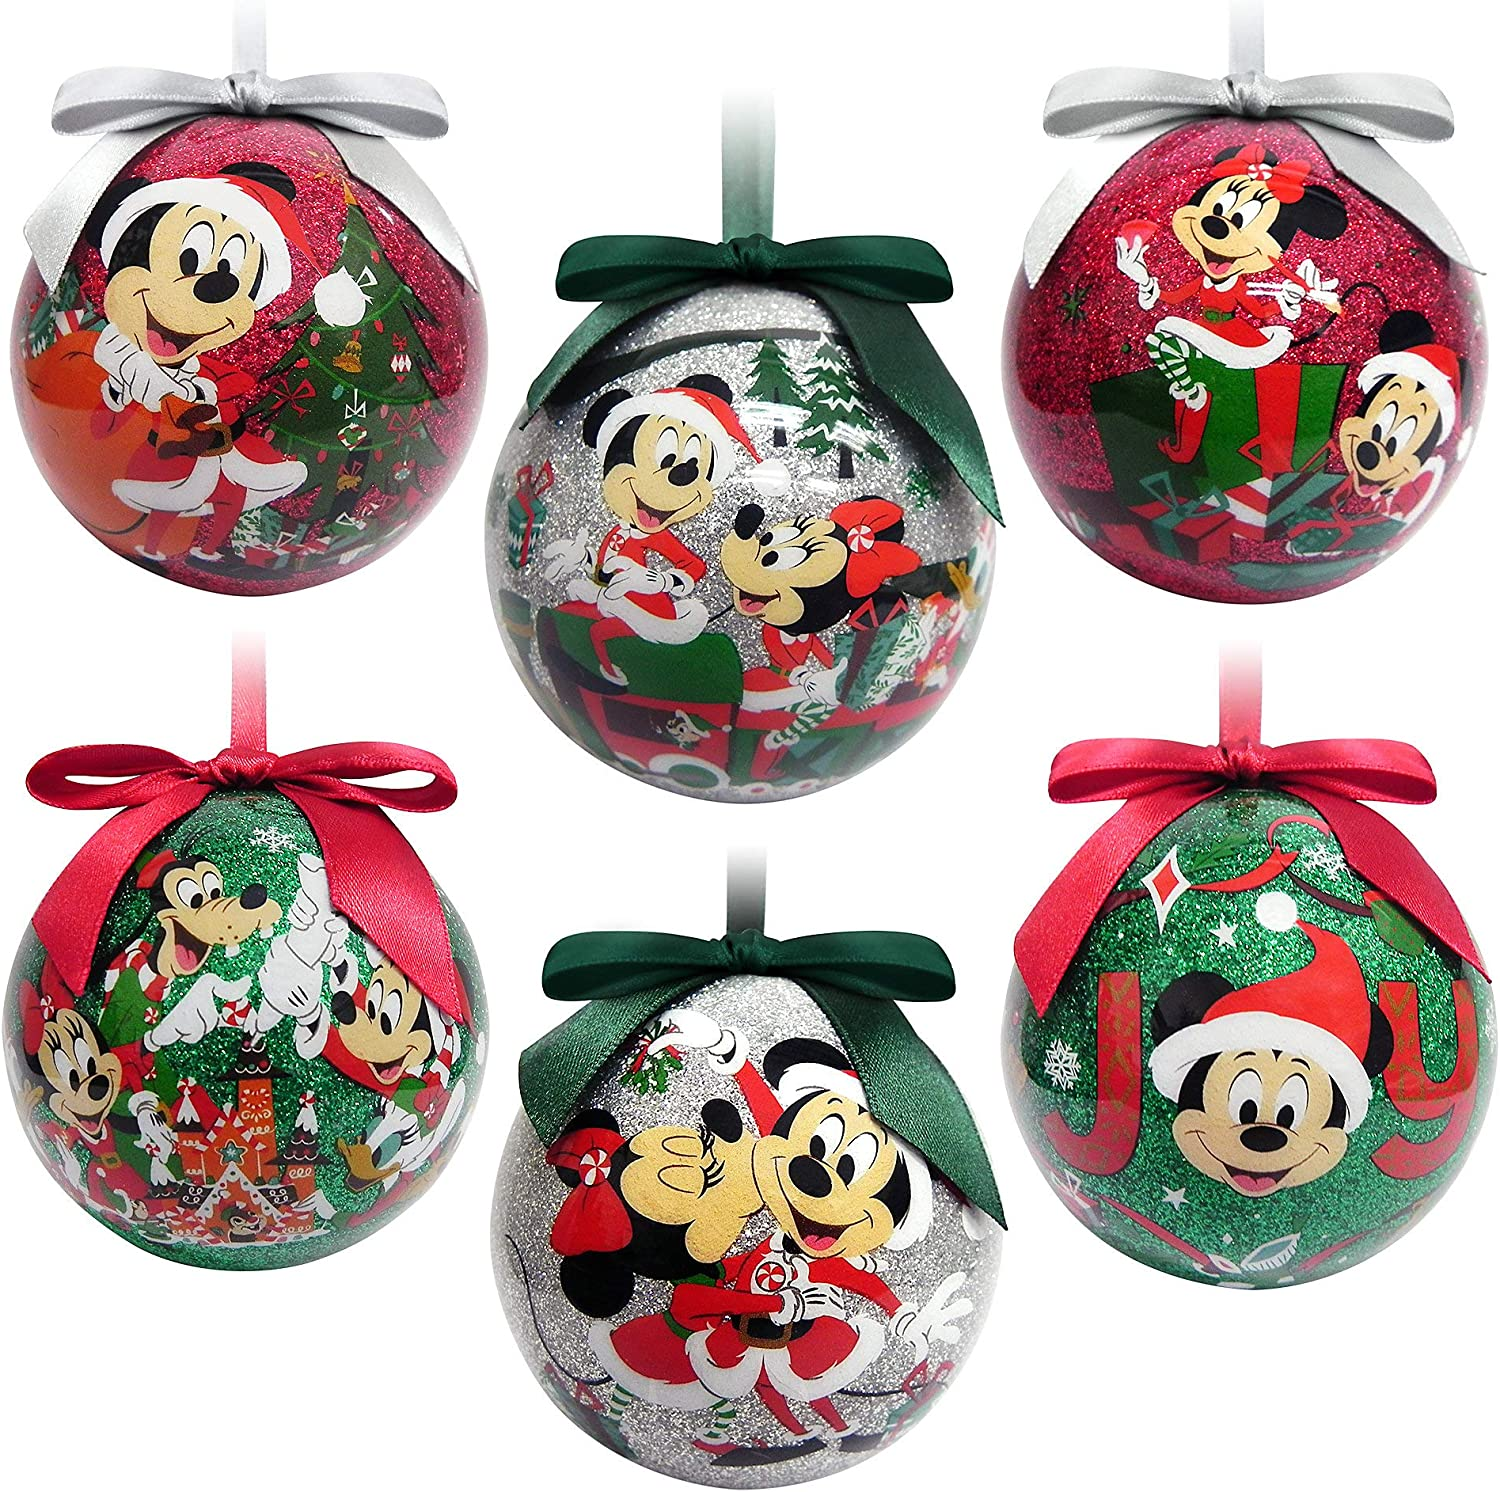 Disney Mickey Mouse and Friends Sketchbook Ball Ornament Set